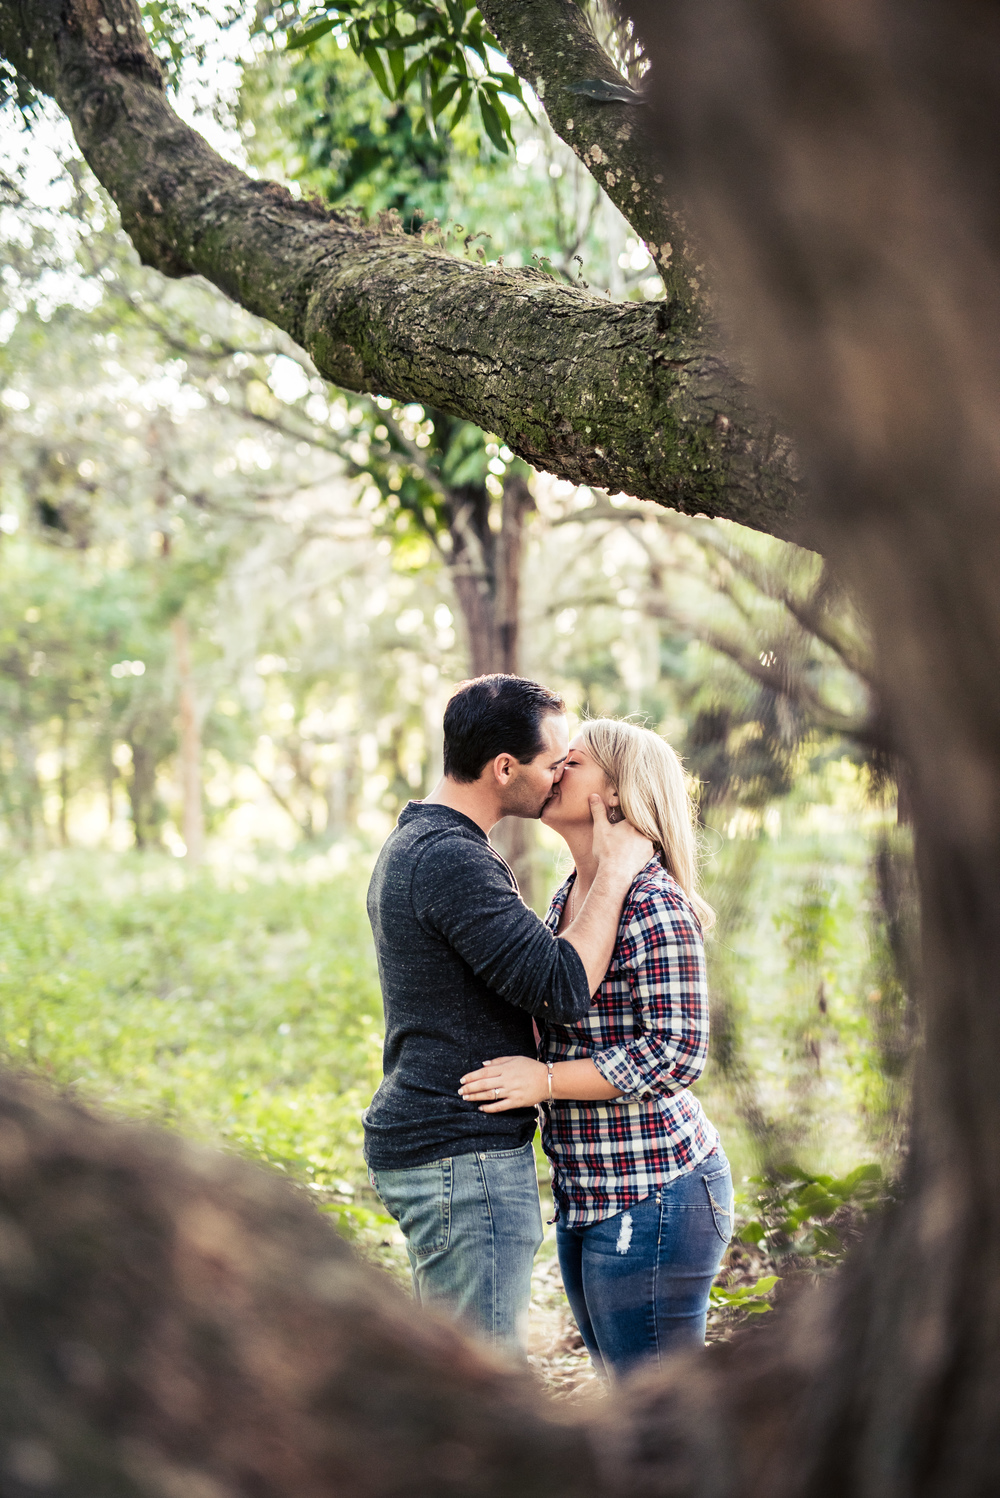 {Lexi&Joe'sEngagementSession}{RiverBendPark}{March2016}-0043.jpg